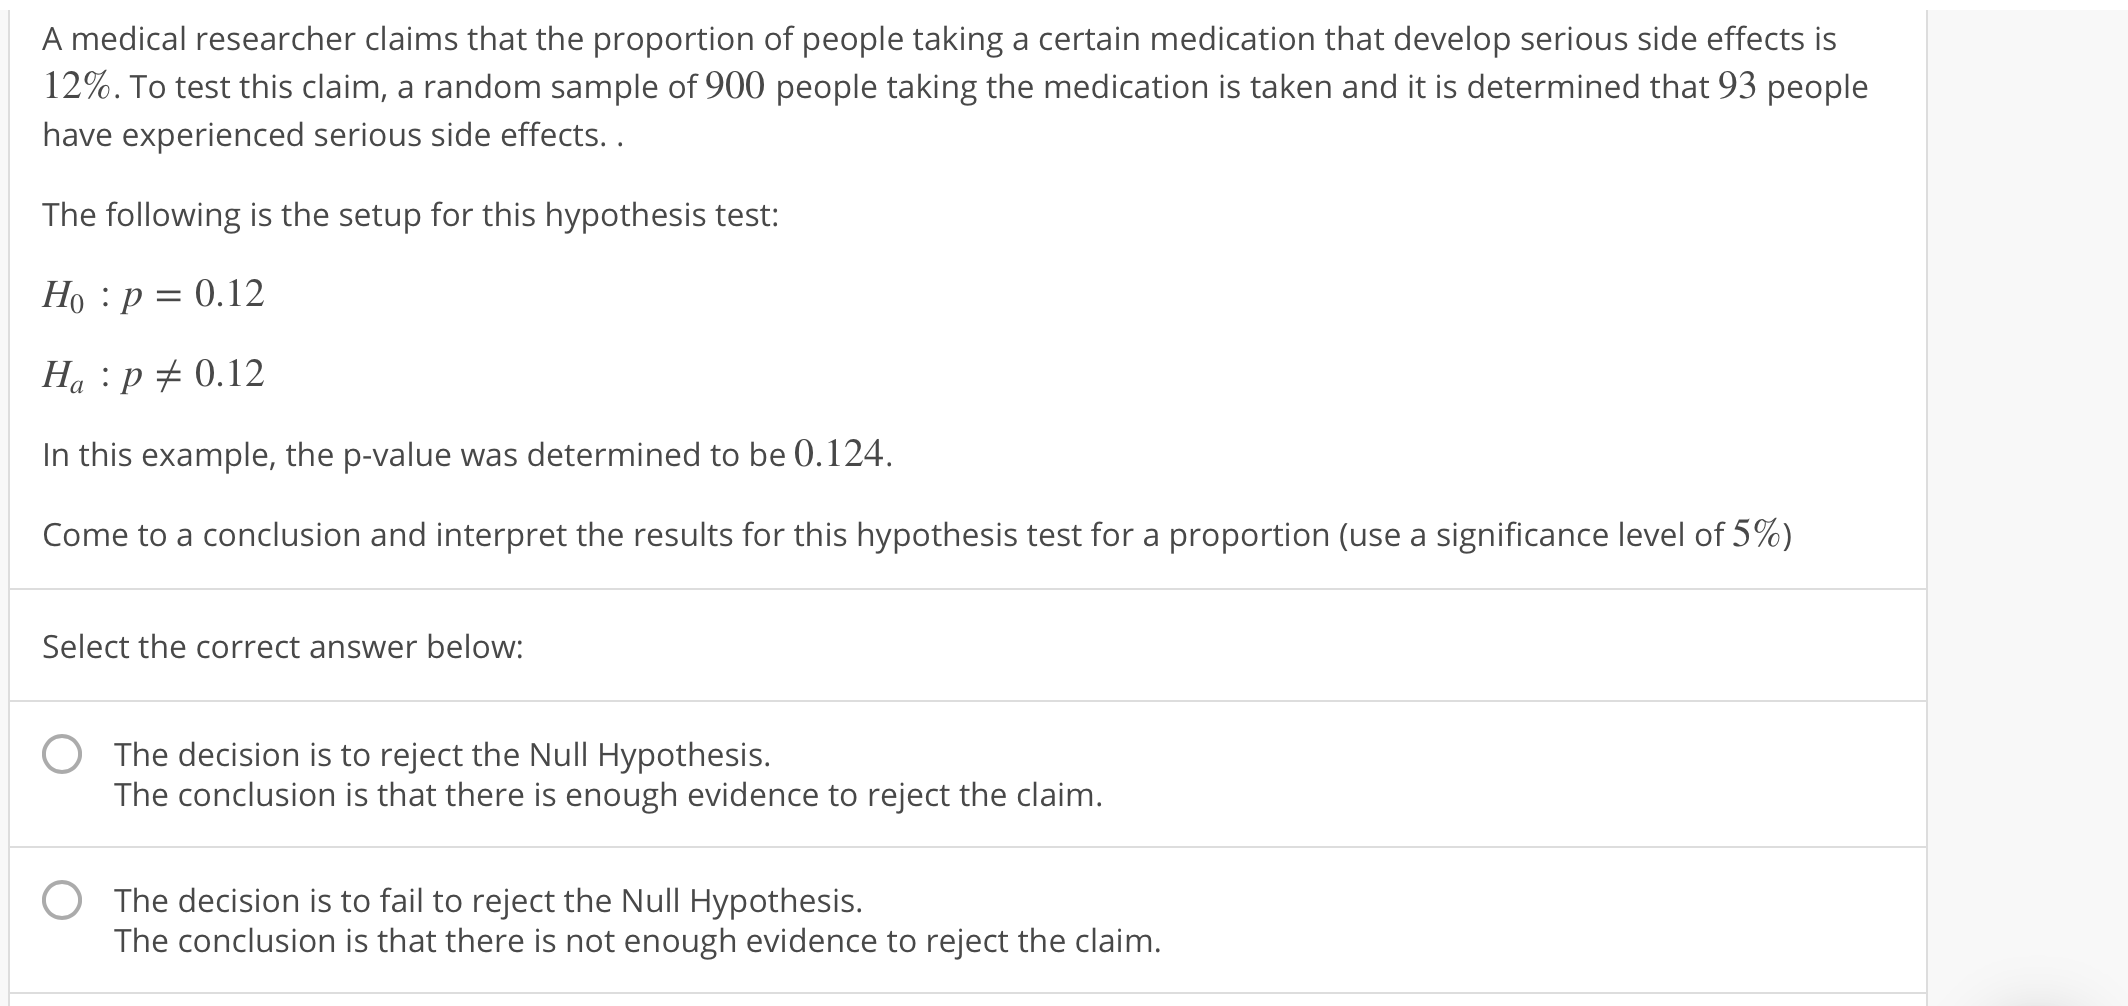 A medical researcher claims that the proportion of people taking a certain medication that develop serious side effects is 12%. To test this claim, a random sample of 900 people taking the medication is taken and it is determined that 93 people have experienced serious side effects.. The following is the setup for this hypothesis test: Ho :p 0.12 Ha p 0.12 In this example, the p-value was determined to be 0.124. come to a conclusion and interpret the results for this hypothesis test for a proportion (use a significance level of 5%) Select the correct answer below: The decision is to reject the Null Hypothesis. The conclusion is that there is enough evidence to reject the claim O The decision is to fail to reject the Null Hypothesis. The conclusion is that there is not enough evidence to reject the claim